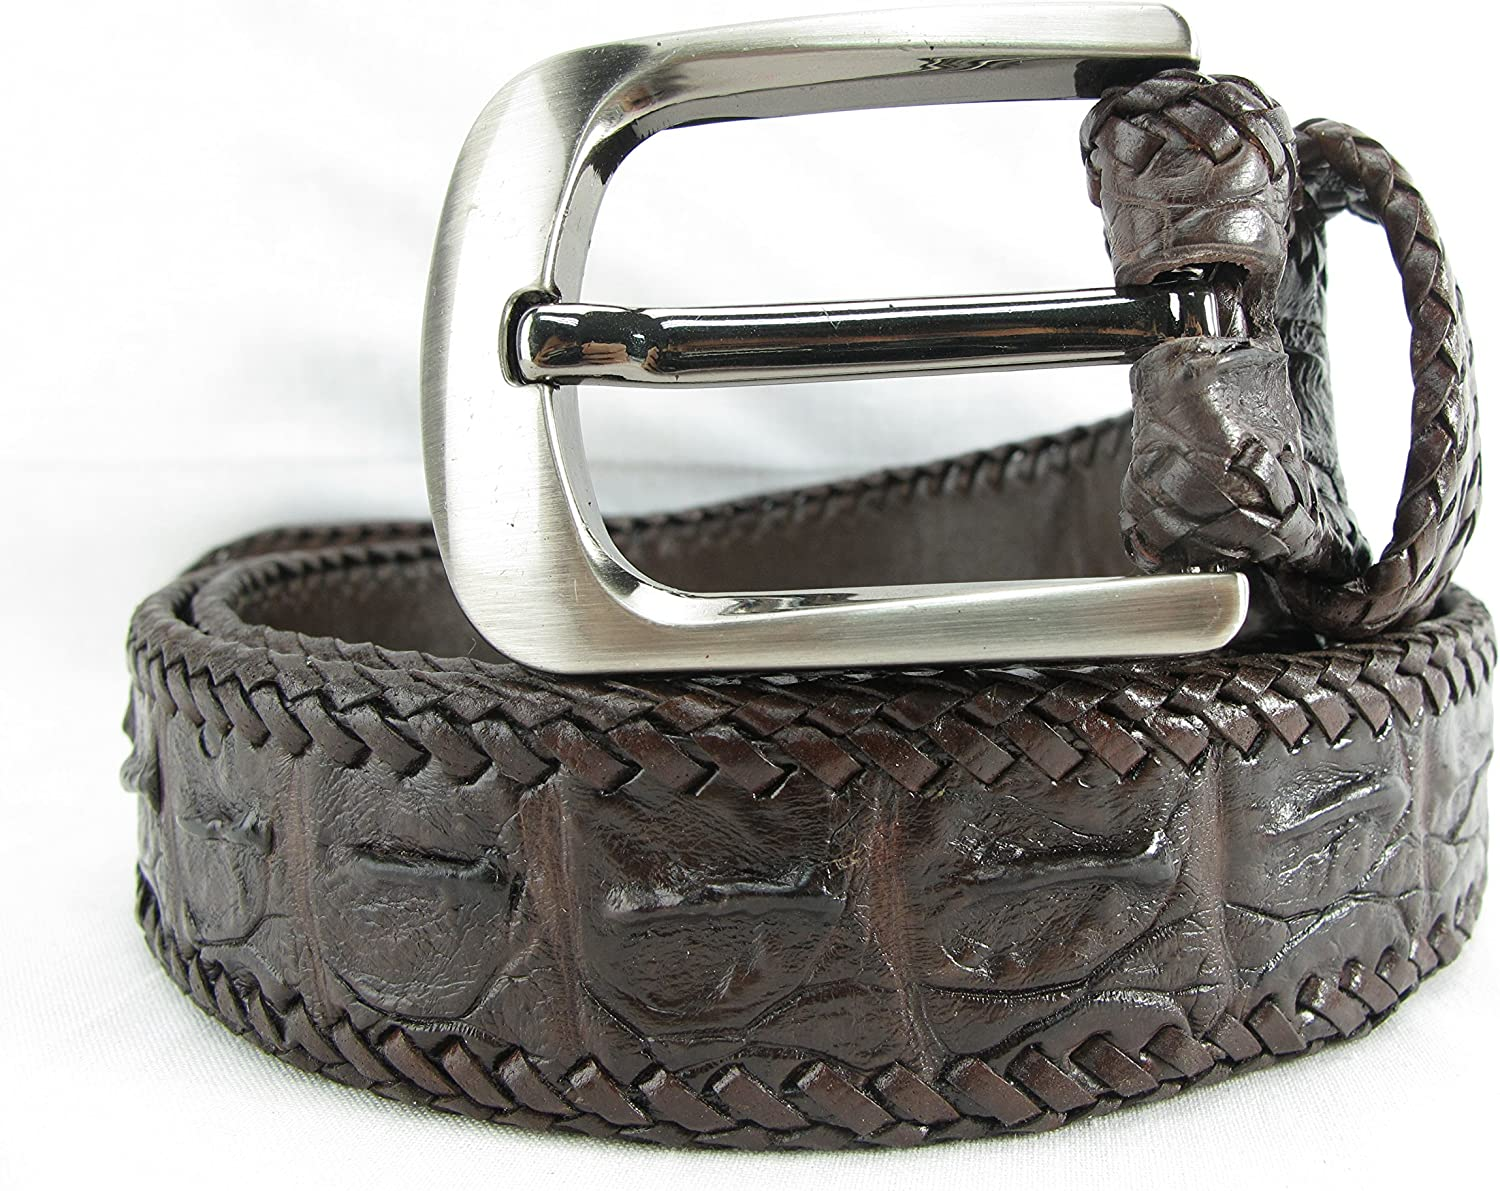 PELGIO Genuine Crocodile Alligator Backbone Skin Leather Handmade Belt 46 Long